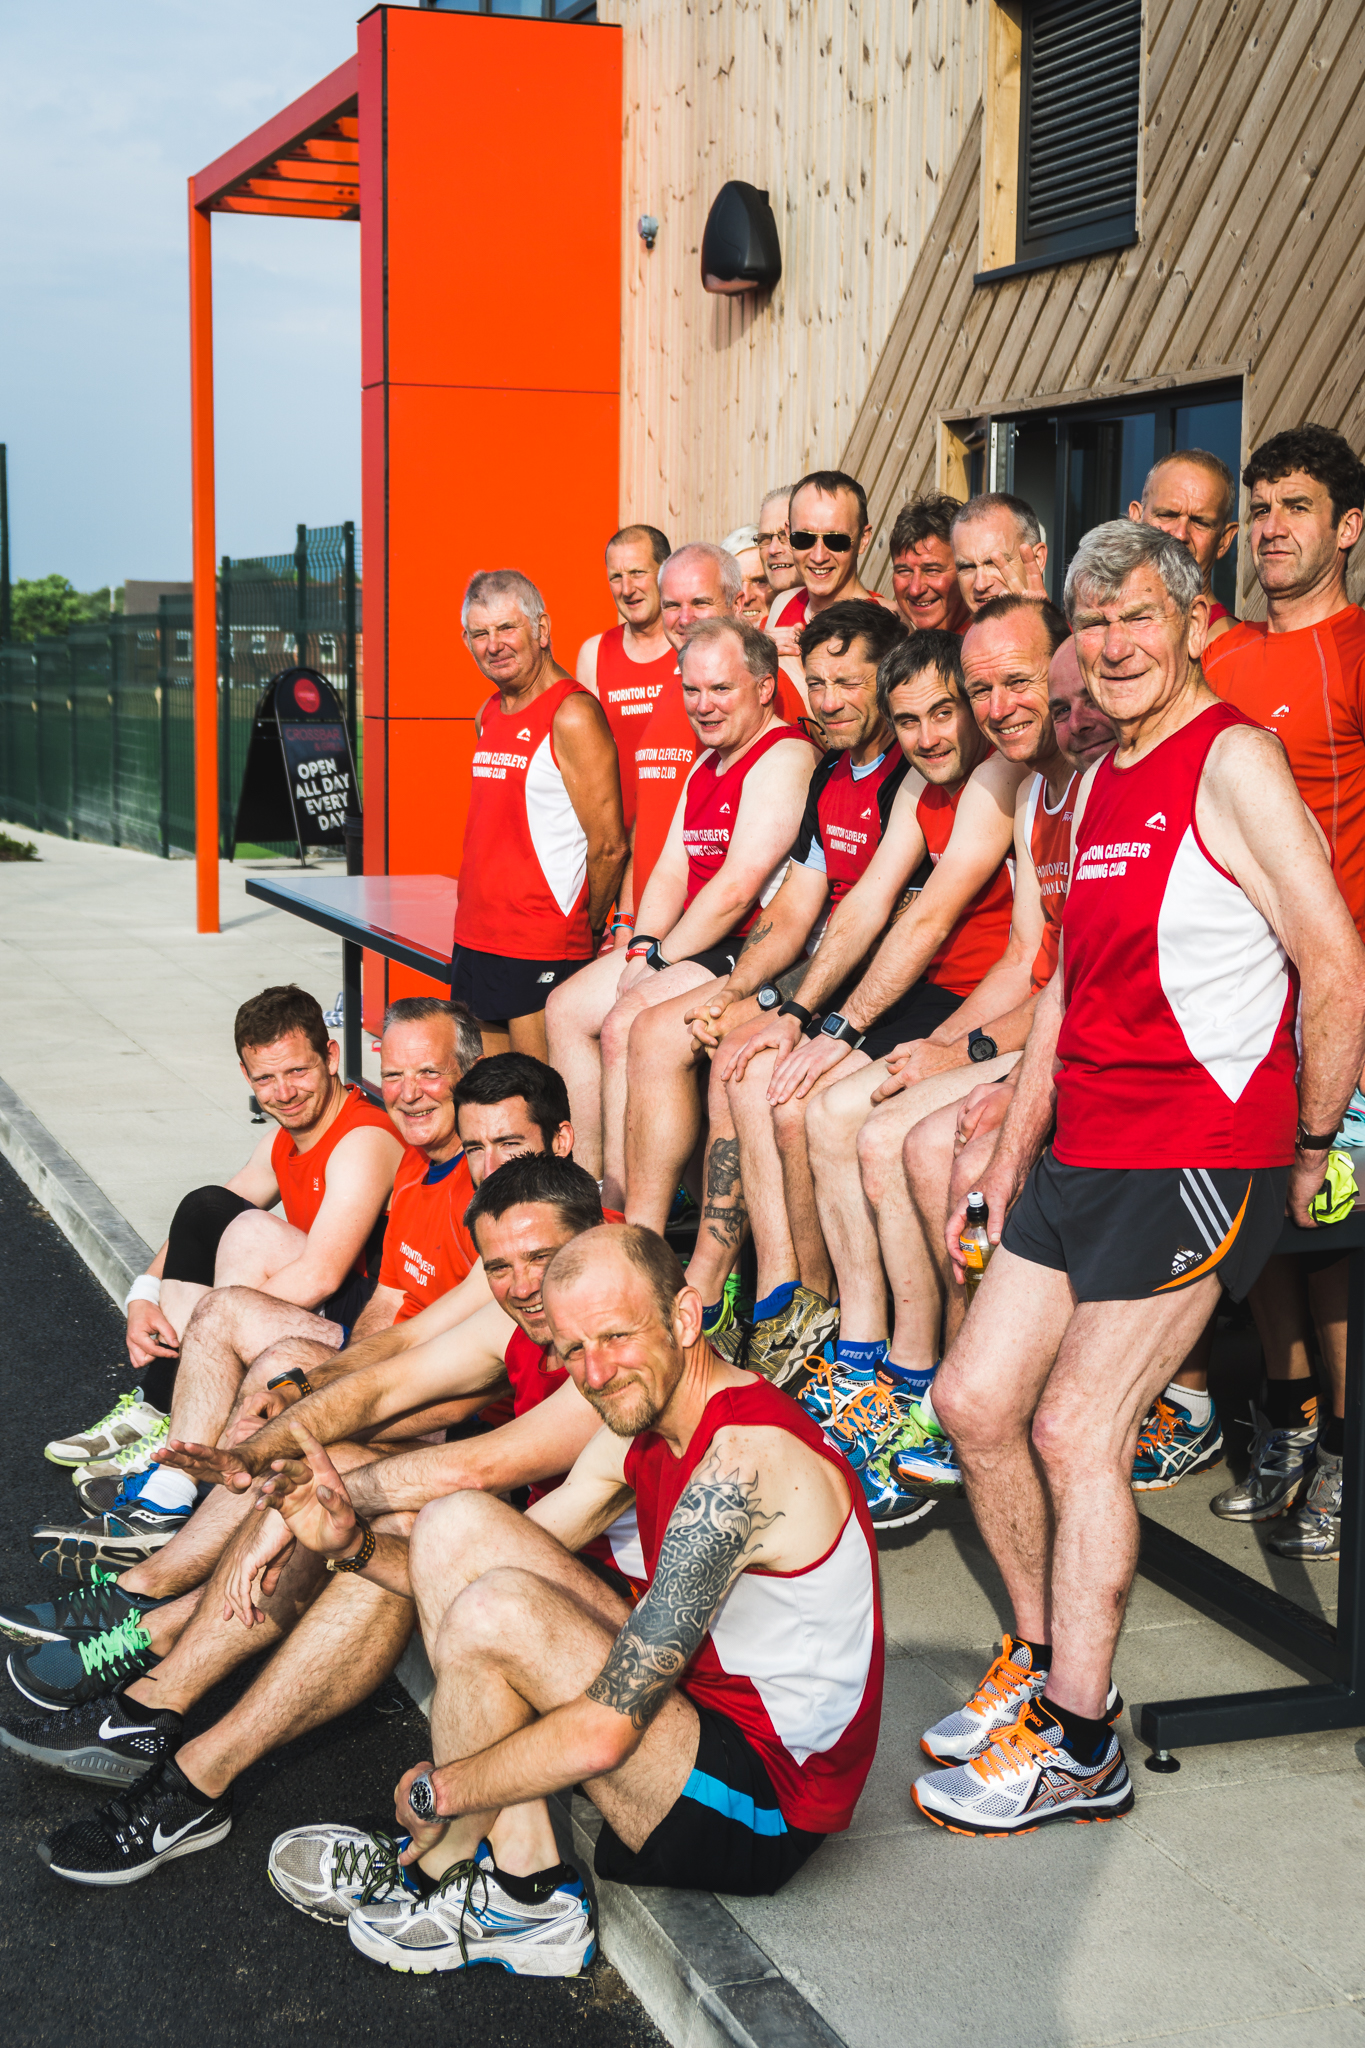 16-06-07 Team photo for Cleveleys and Thornton running club-19.jpg